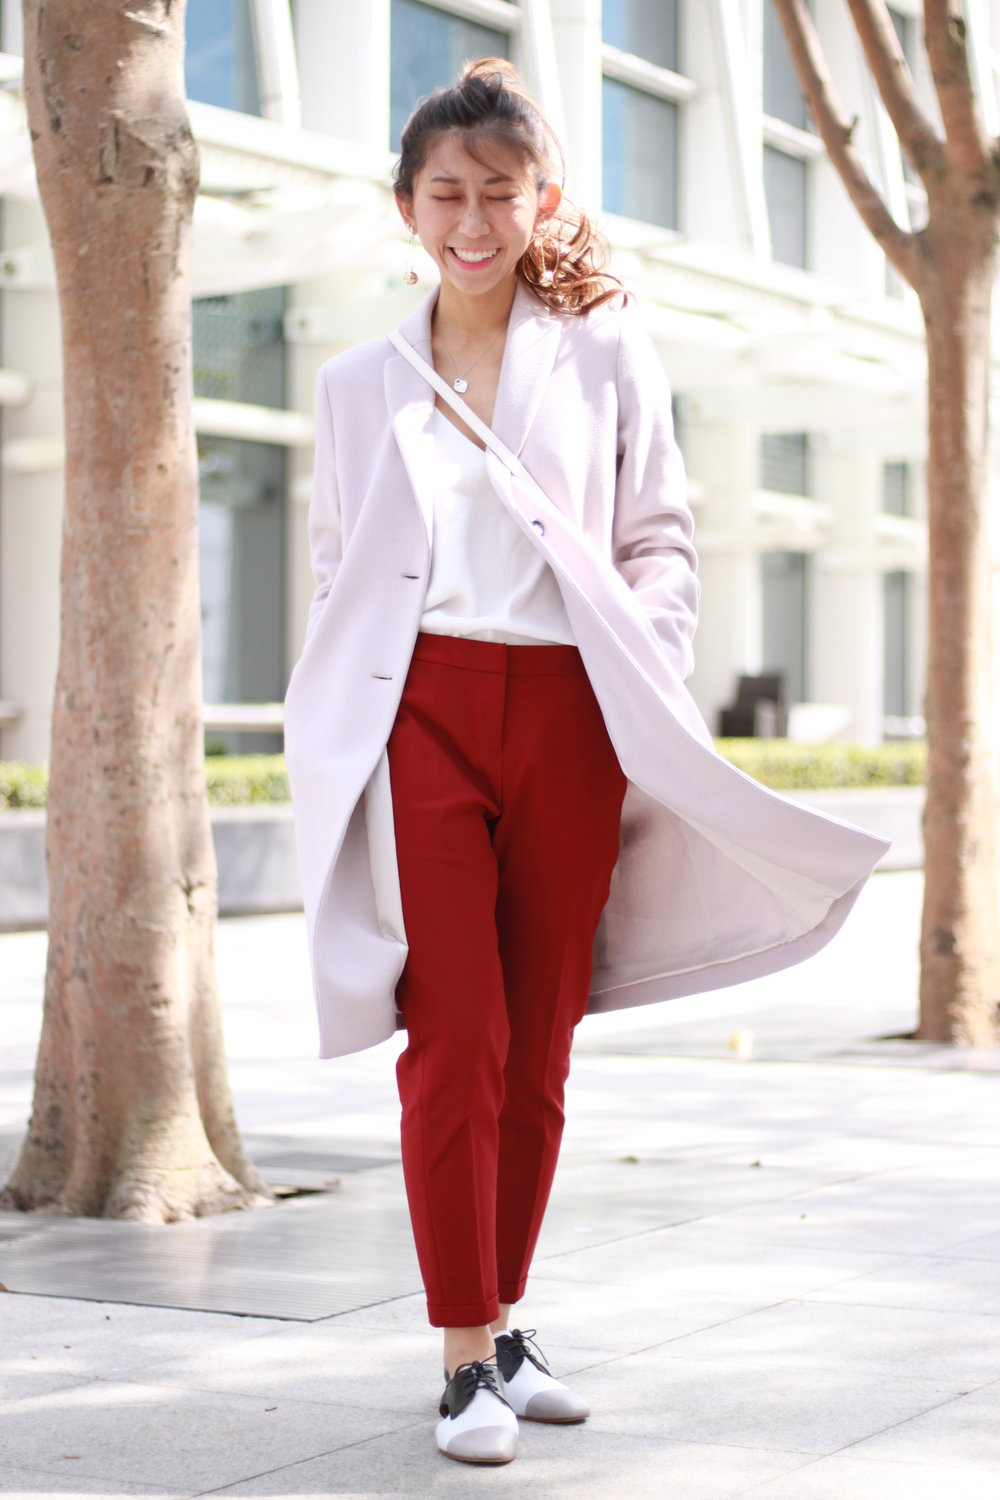 Asos white cami / Giordano Ladies red pants / Giordano Ladies cut-out oxford shoes / Pennyblack coat / Agnes b. white crossbag / DearPostman golden disco ball earrings